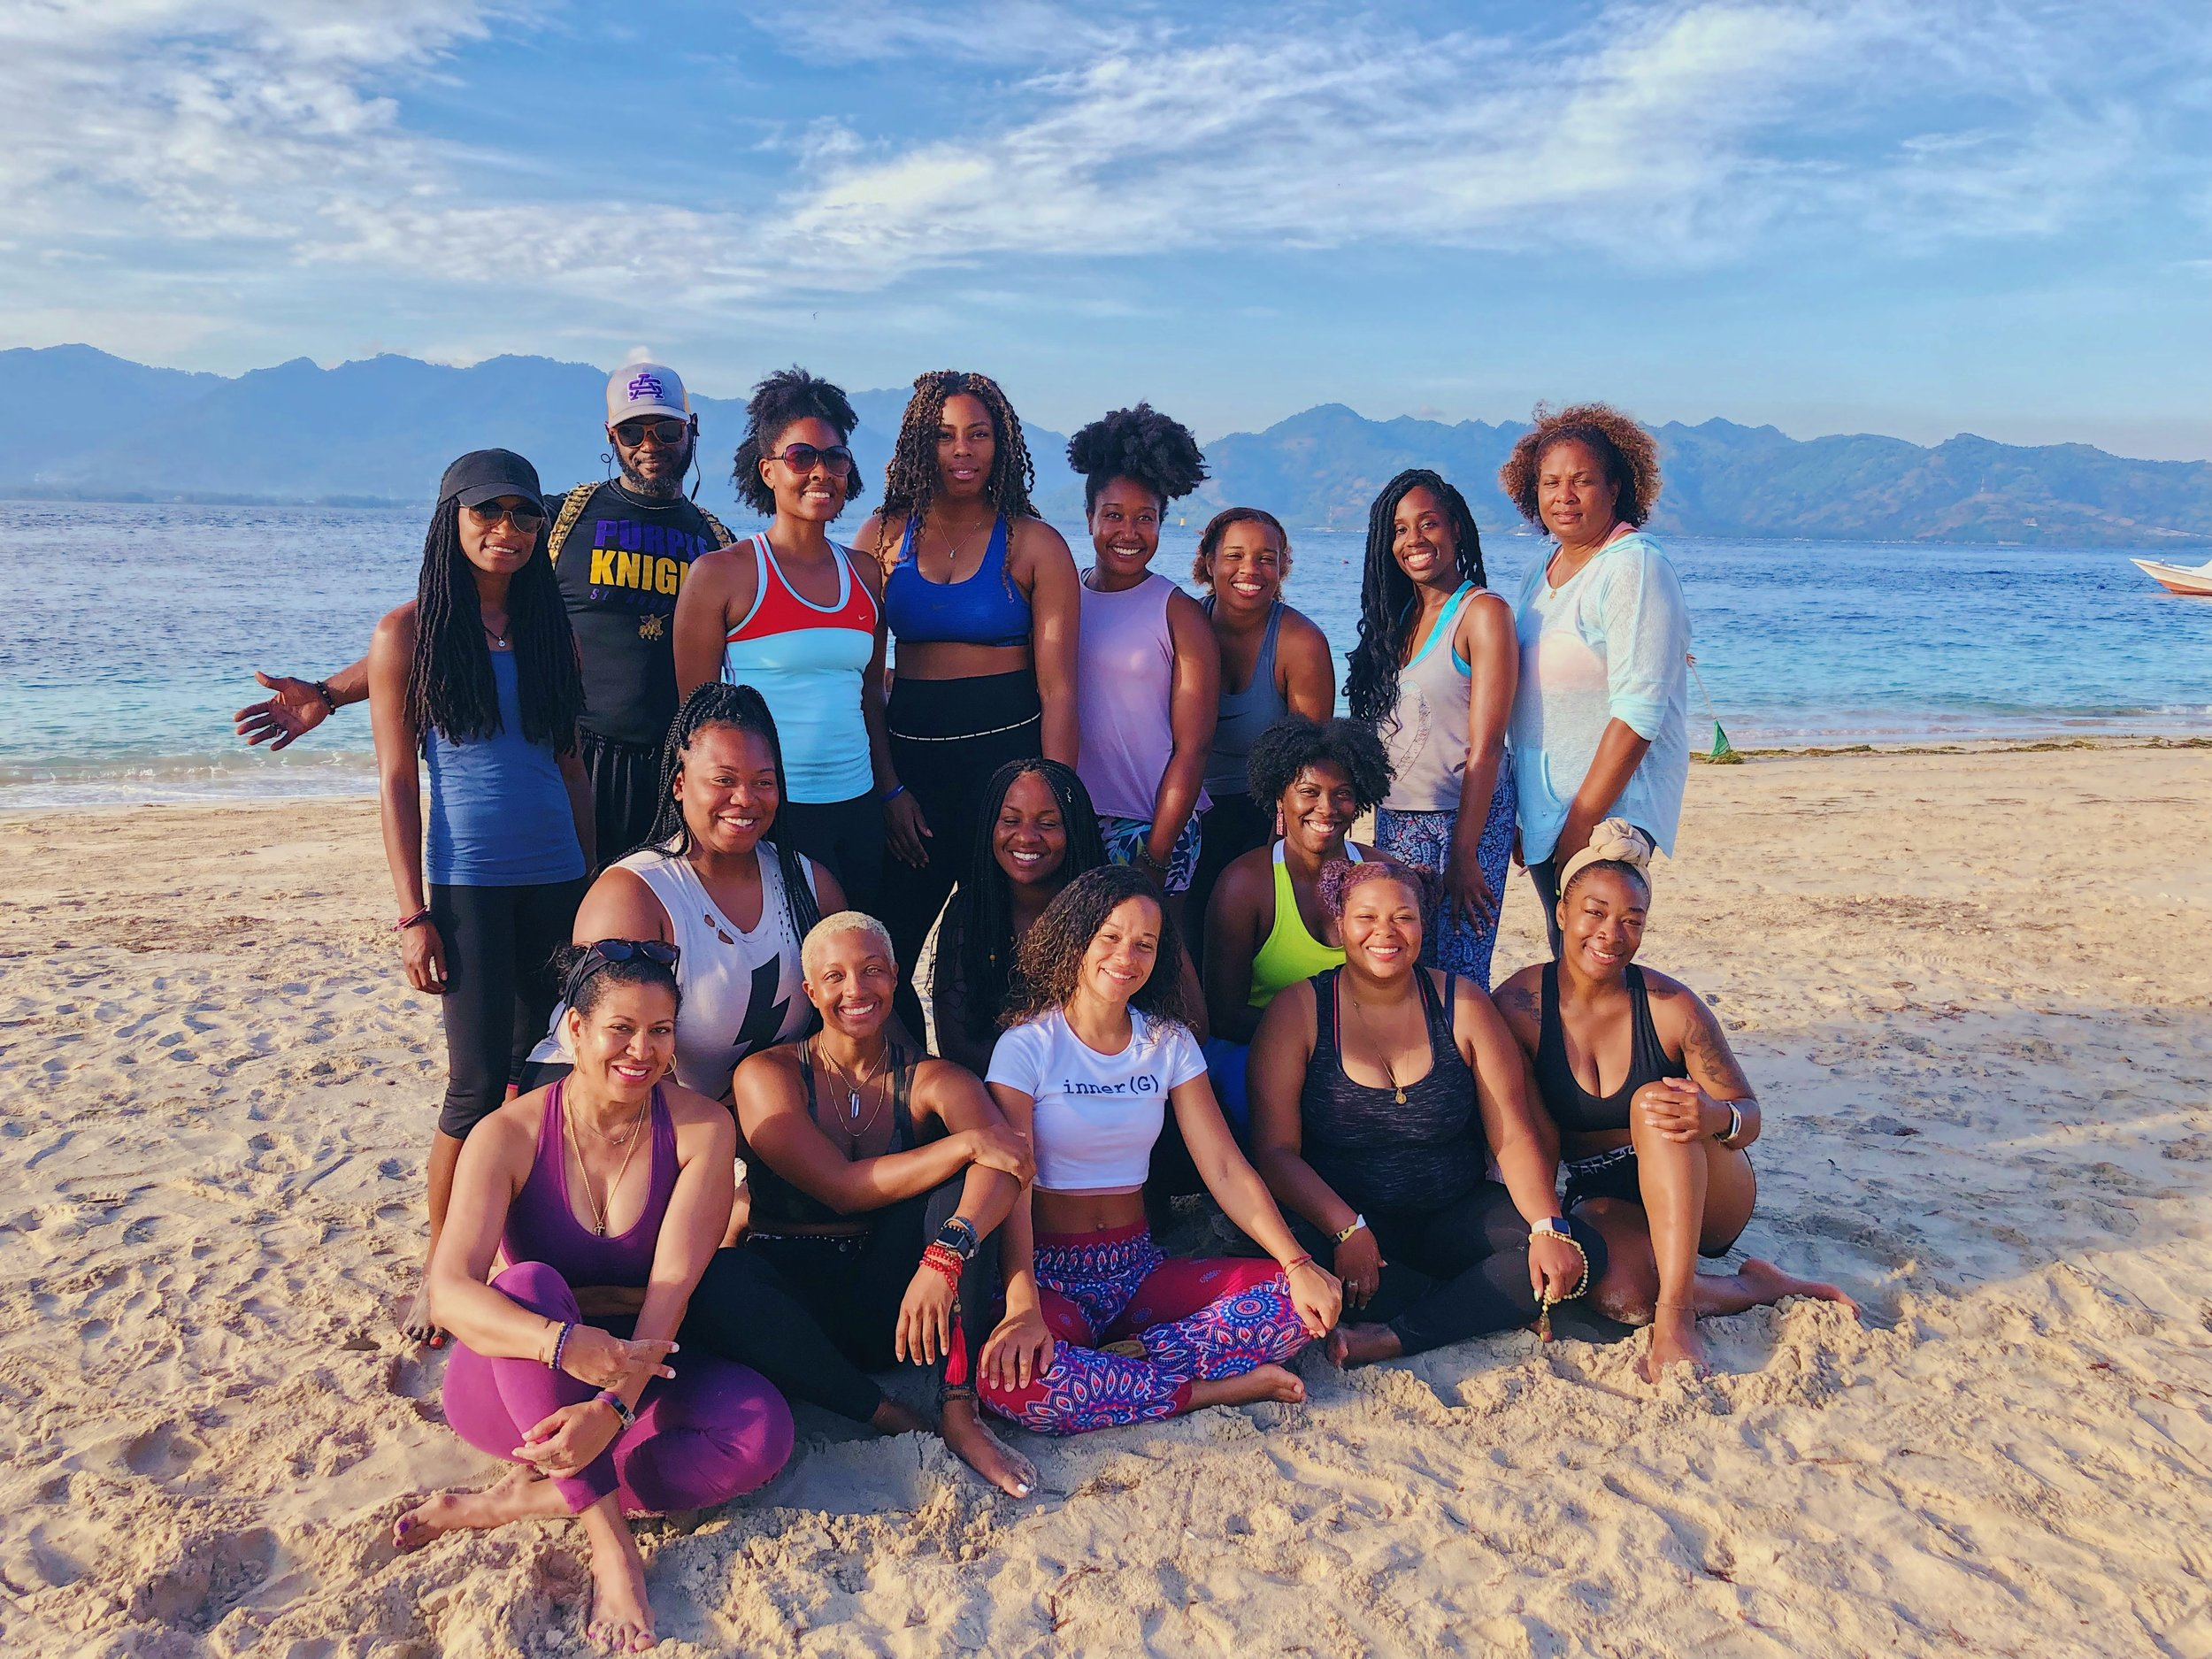 From left to right: Front Row - Dee Dee, Mel no B, MEEE, Sanaa, C, Britt, Kleo, Niah. Back row - April, Chief Che, Bran Bran, Selena, Jé, Sadé, Chanel, Shea Buttah